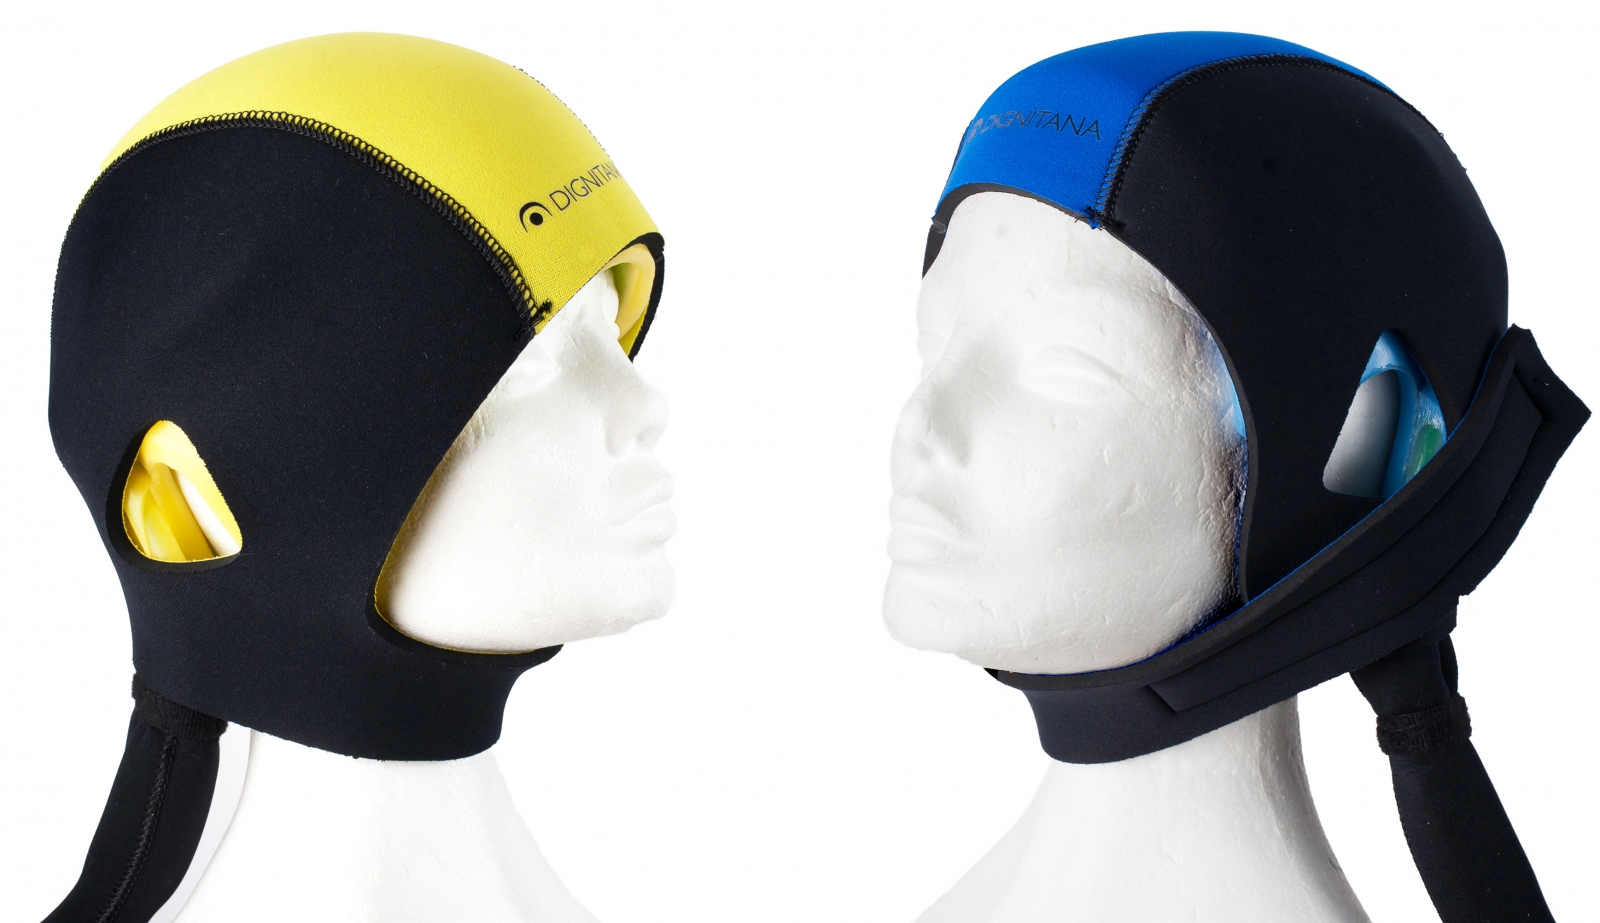 The Dignicap, a cooling cap that can limit the hair loss suffered by cancer patients undergoing chemotherapy